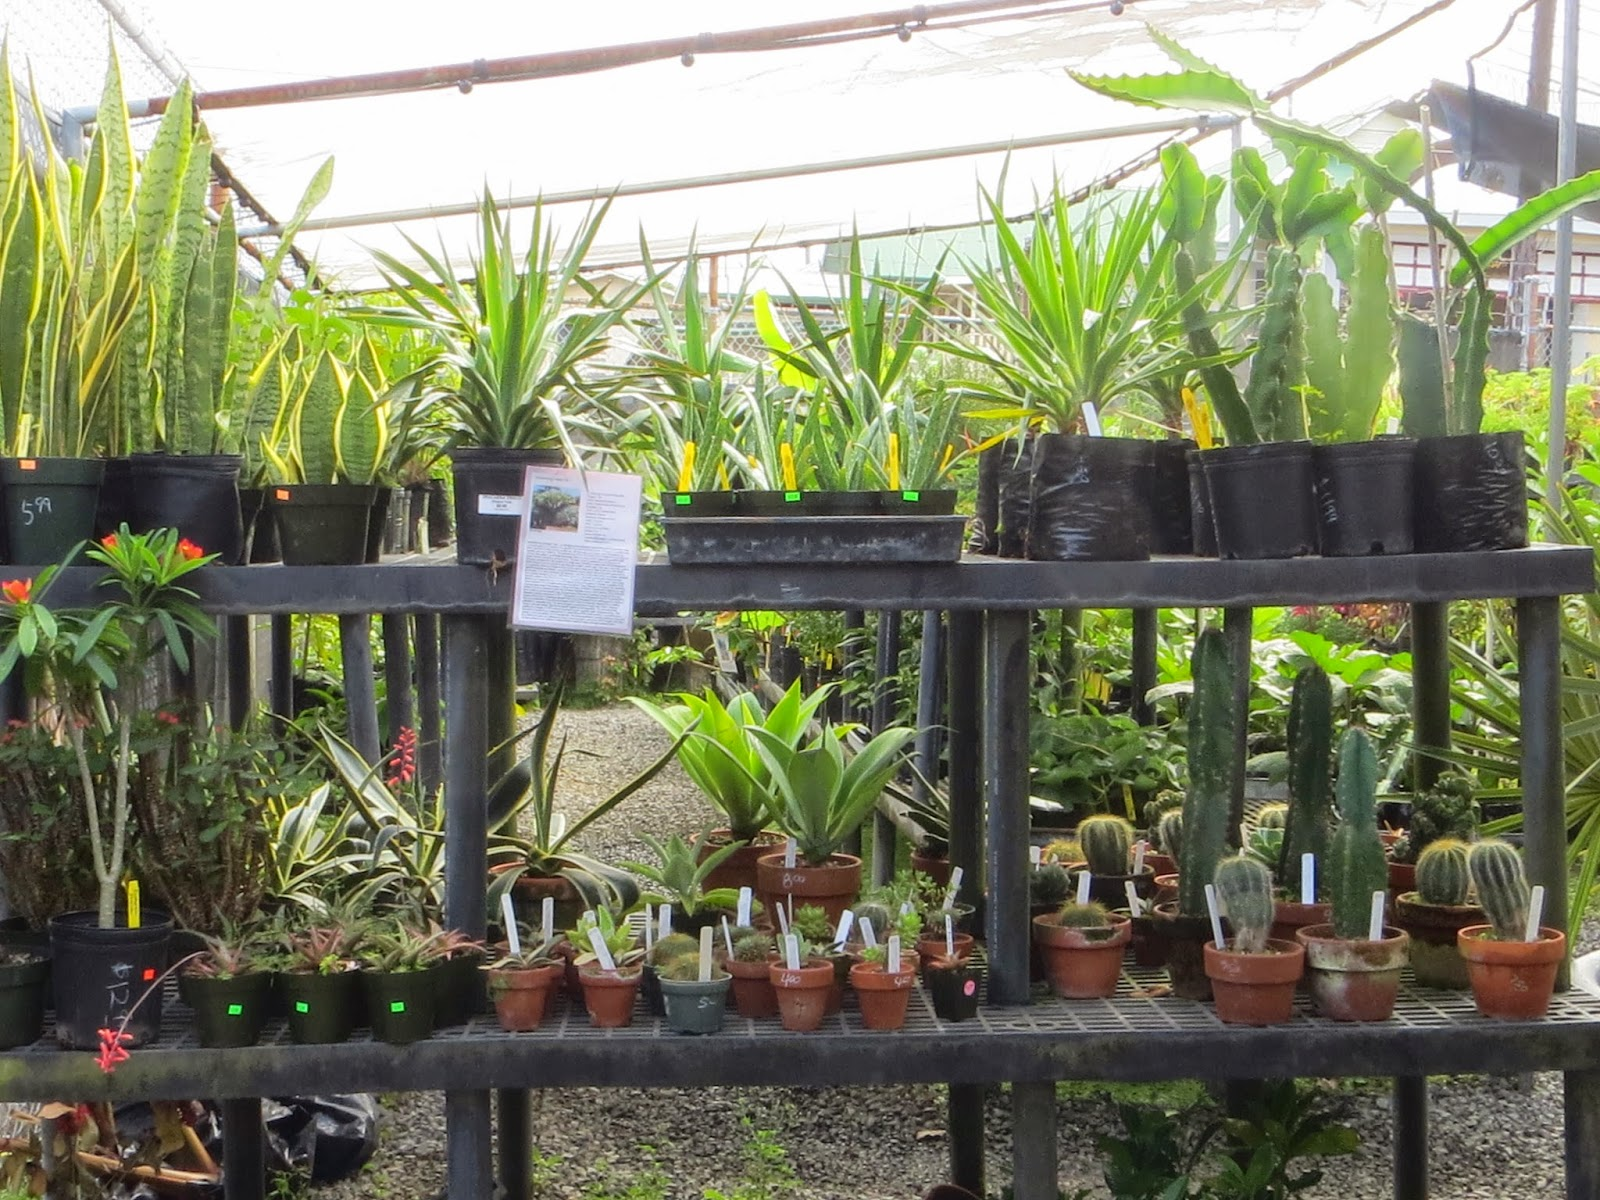 A Quick Visit To Hilo Garden That My Delight Featured Small Nursery I Ll Be Back In 5 Minutes Was Realistically Half Hour